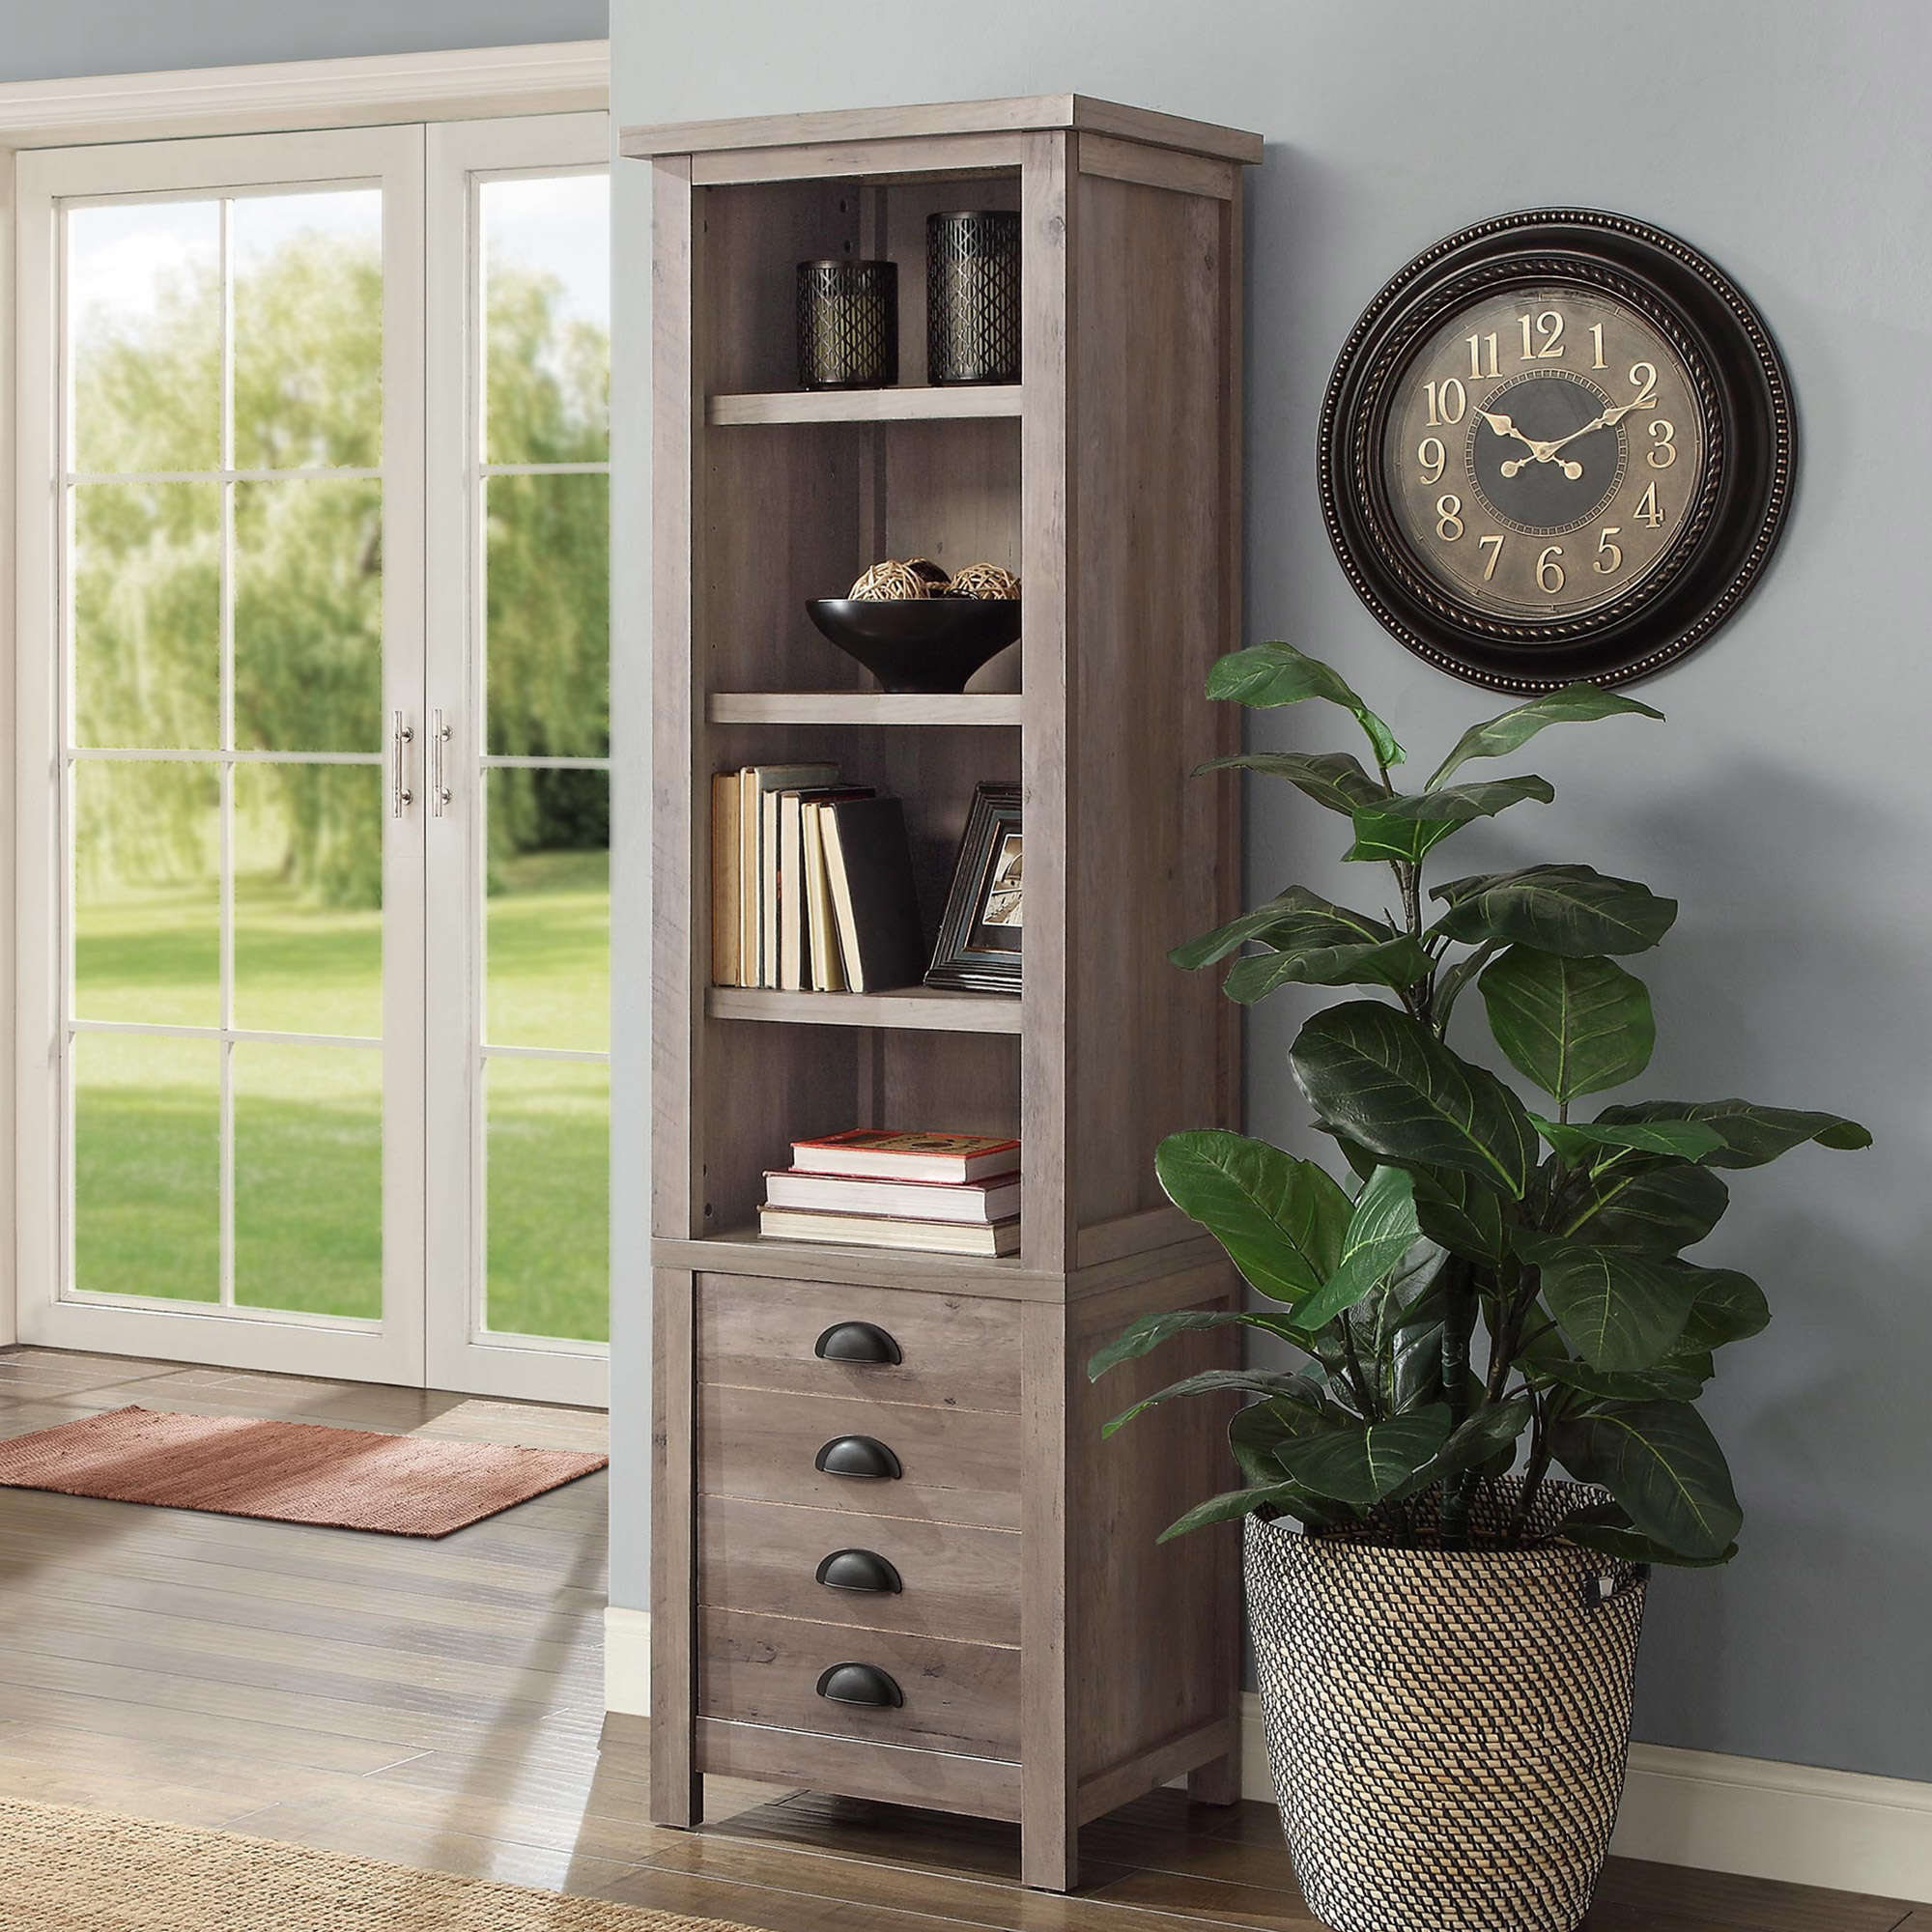 "Better Homes and Gardens Granary Modern Farmhouse 72"" Tower Bookcase, Multiple Finishes"